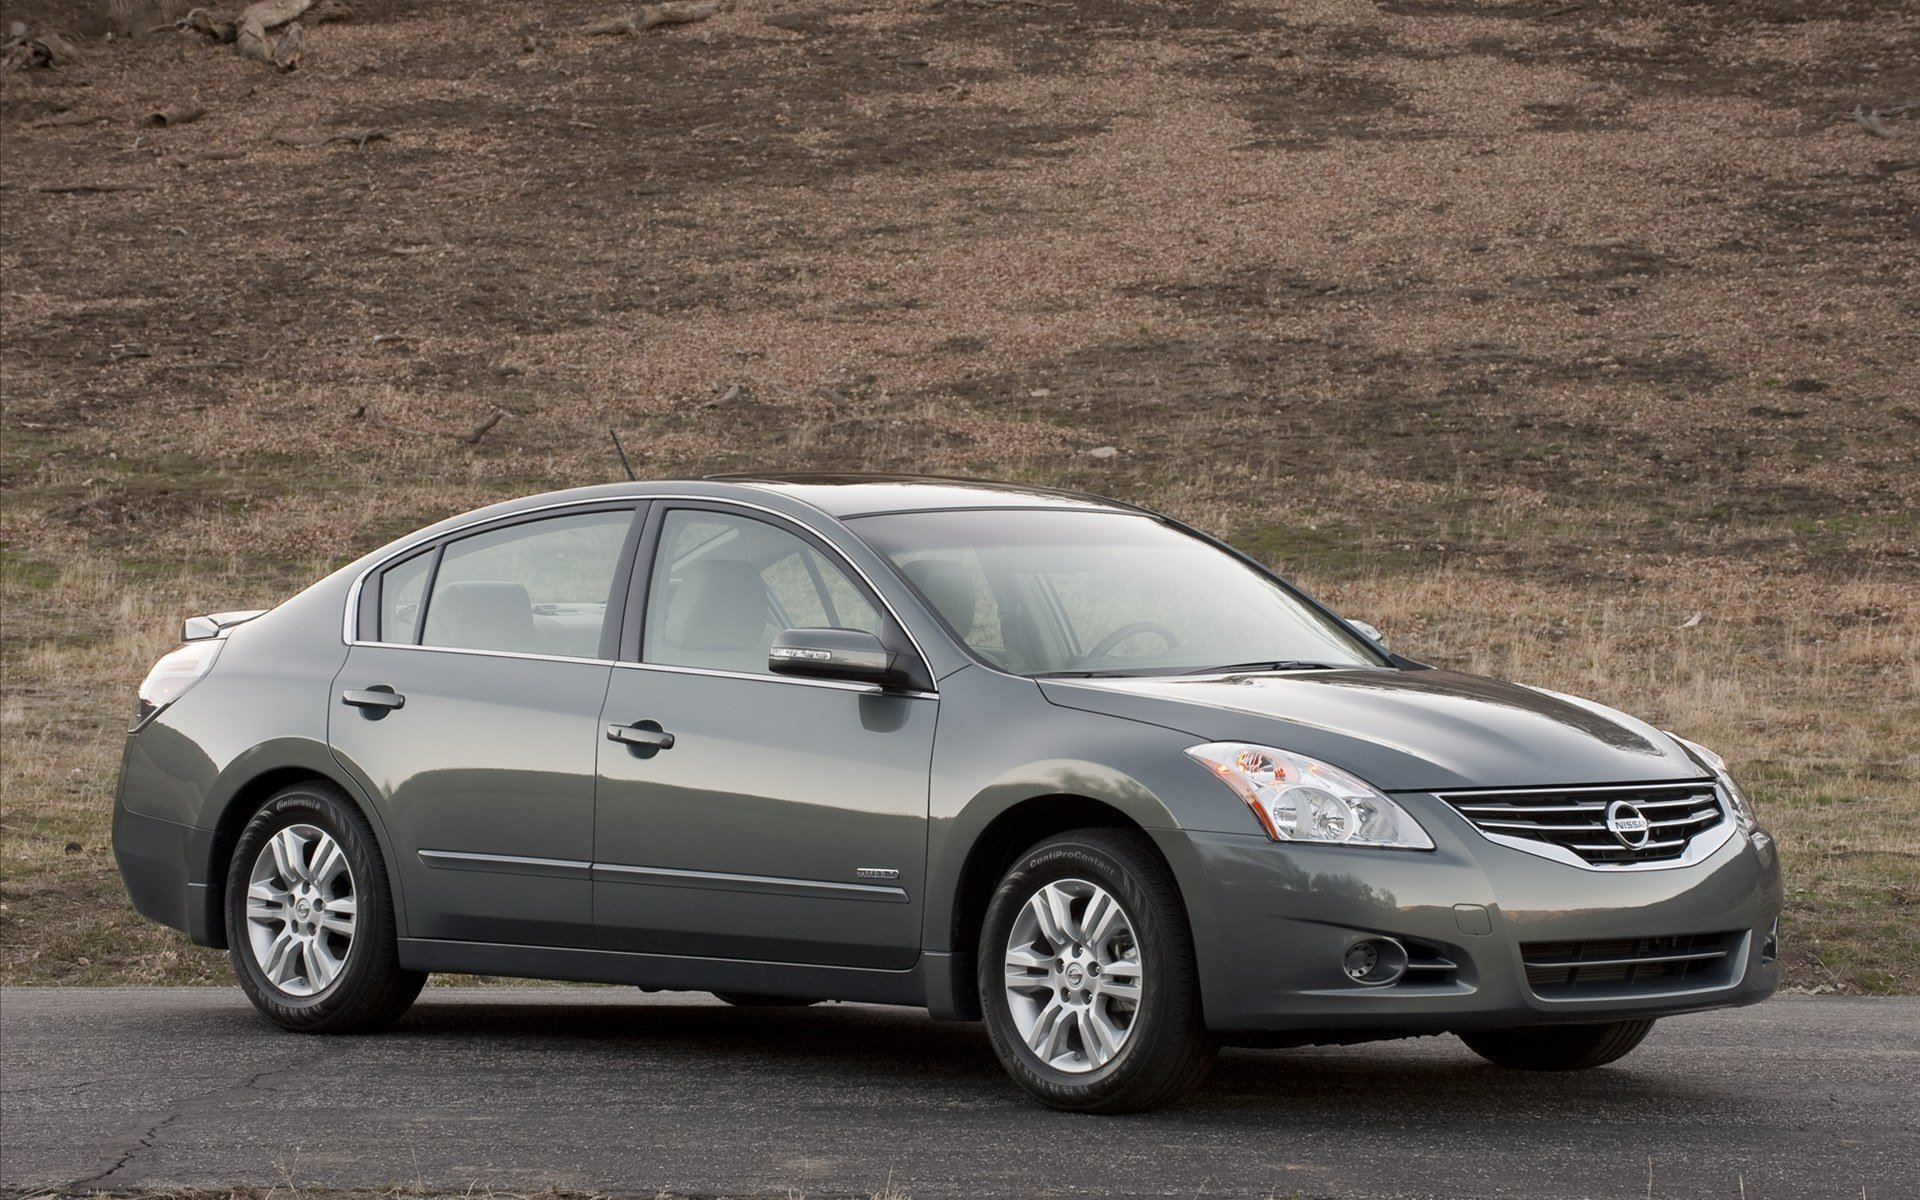 Vehicles - Nissan  Nissan Altima Wallpaper